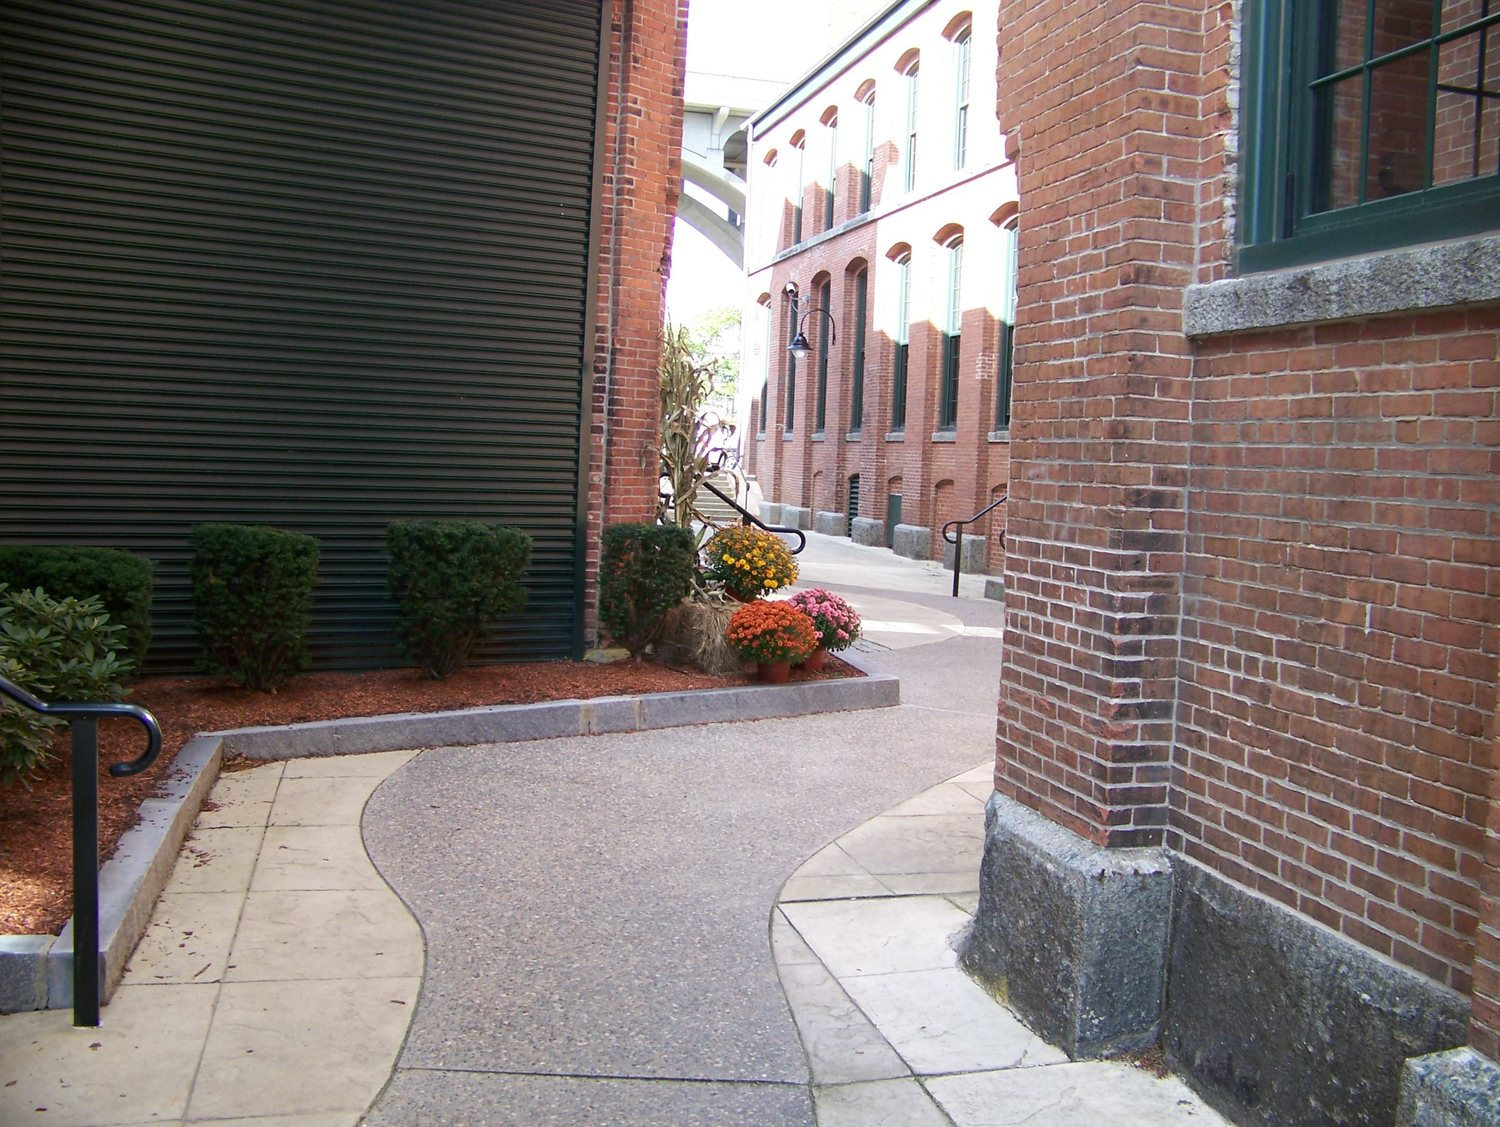 Secluded sidewalk between two brick buildings.